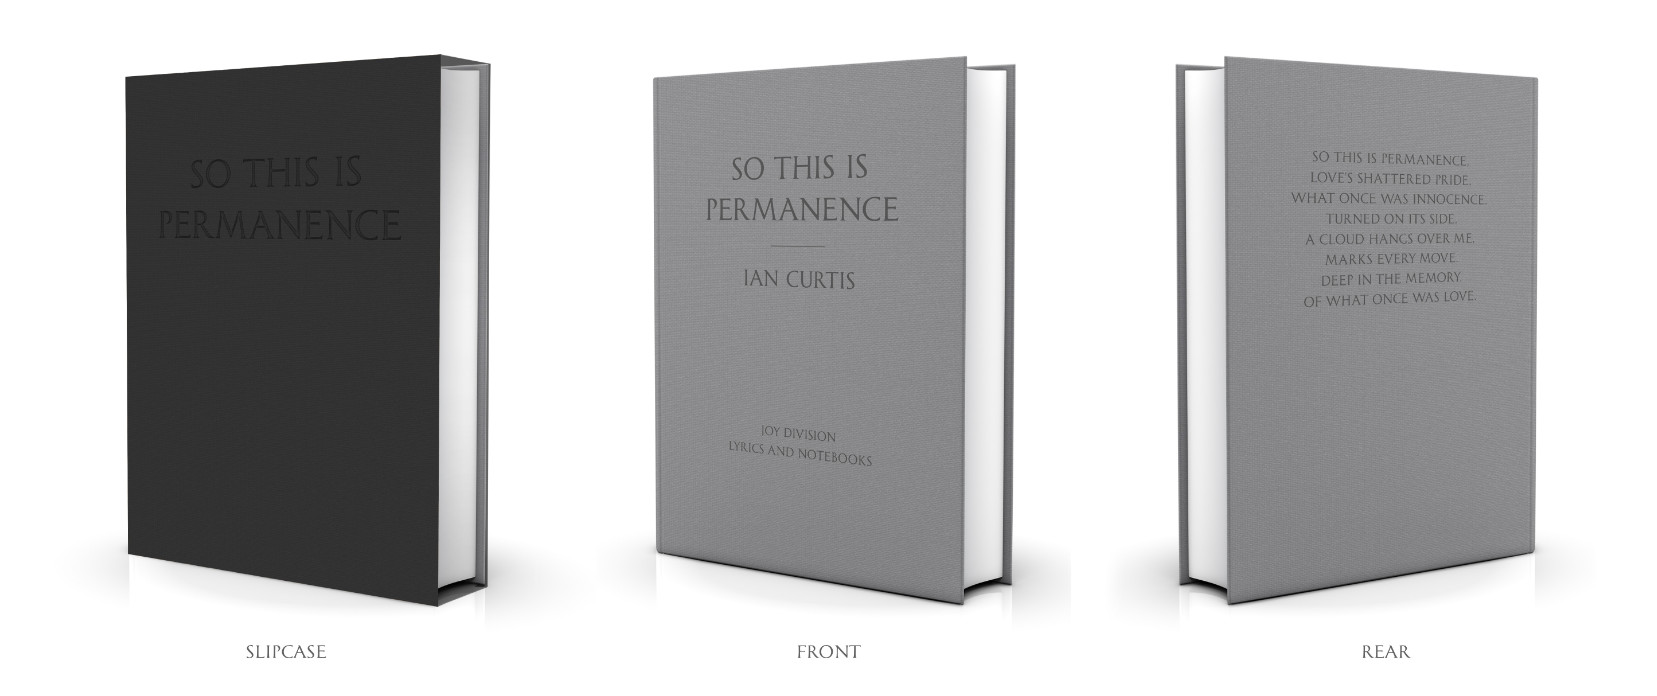 so this is permance So this is permanence 3cd (2015) peter hook & the light perform the complete works of jo y division, celebrating the life of ian curtis live at christ church.